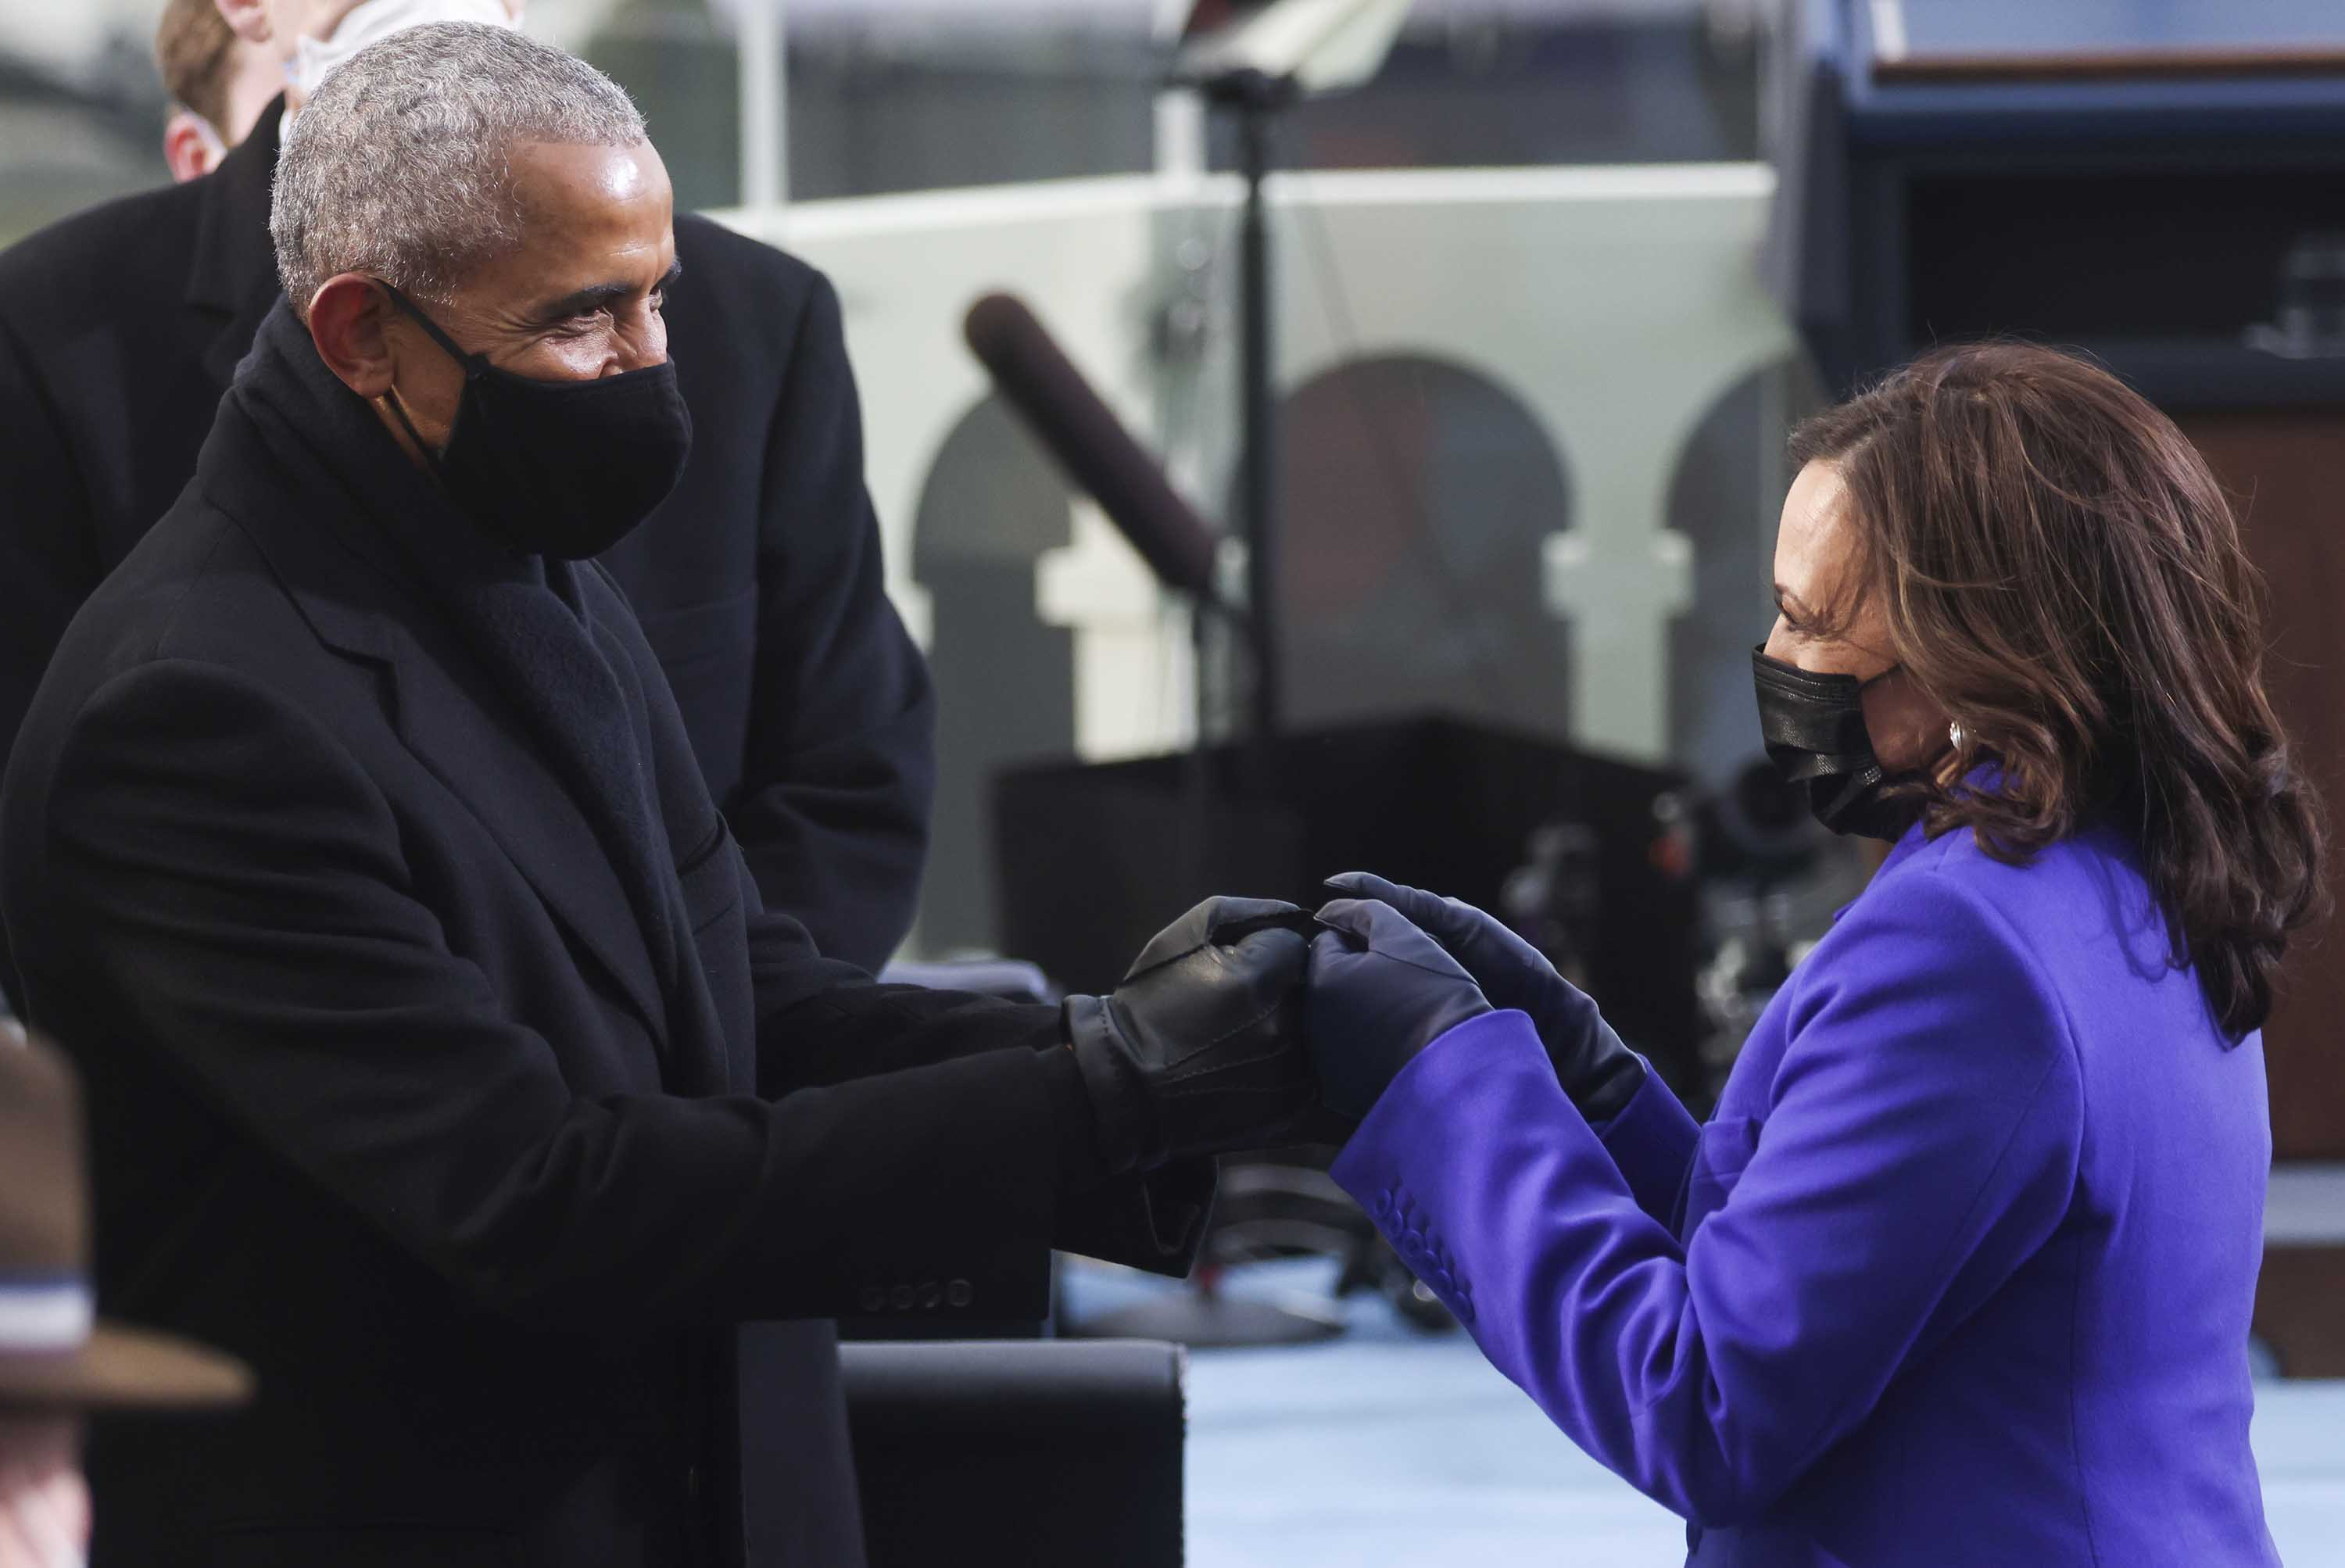 Obama and Harris share fist bump at inauguration in historic moment